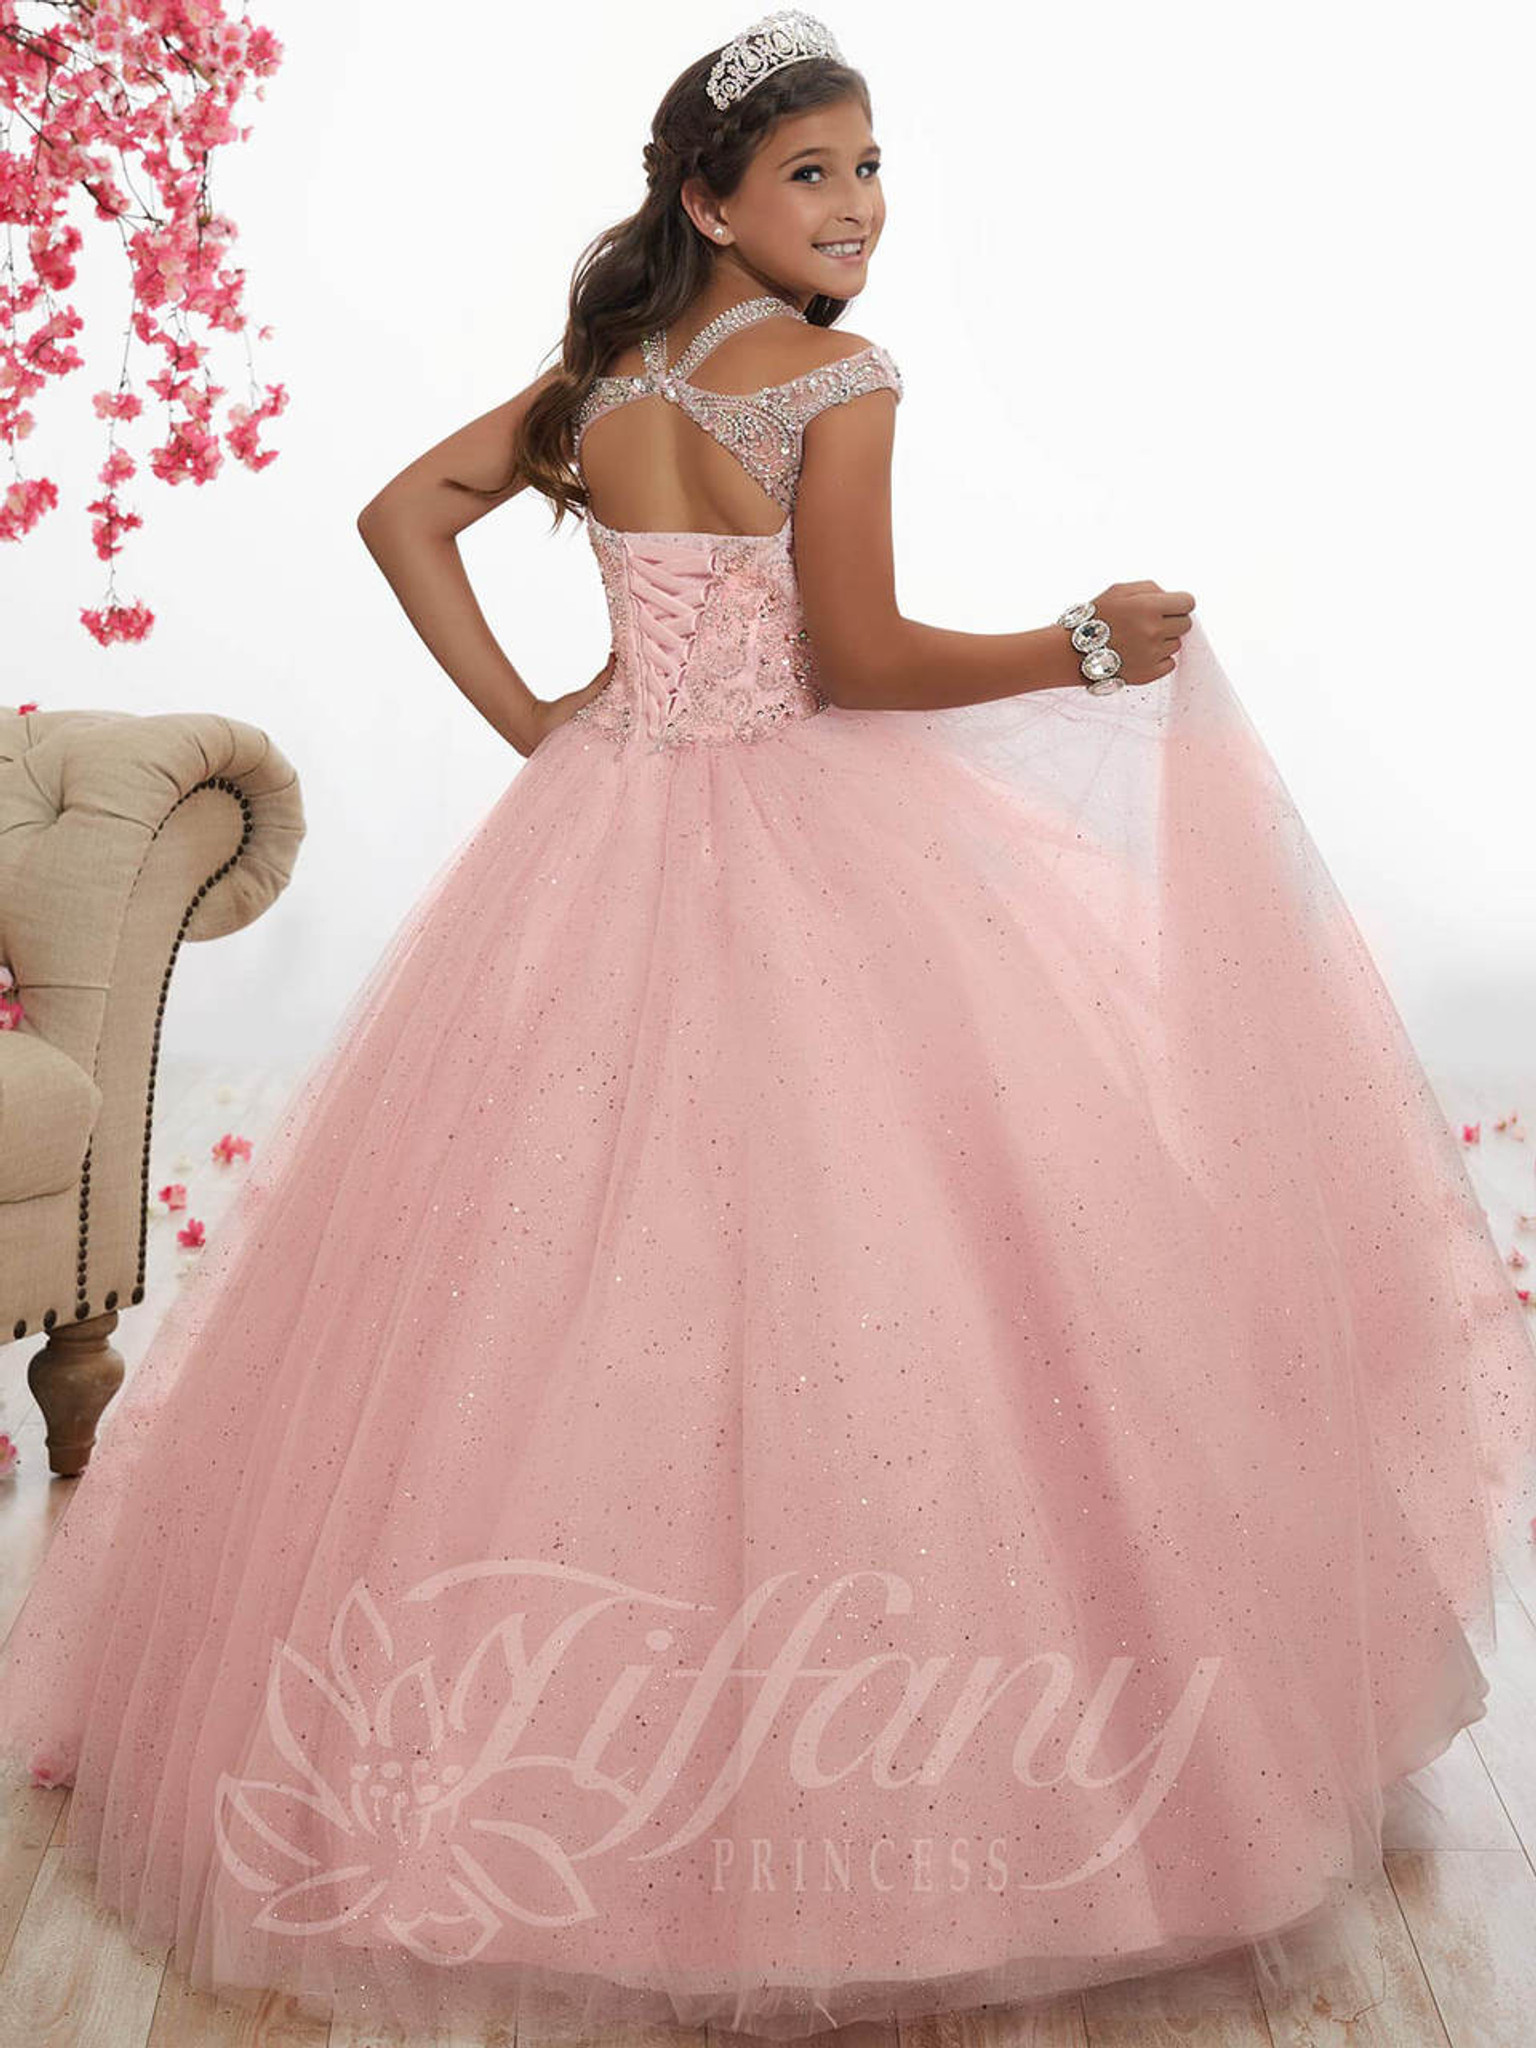 Tulle Girls Pageant Dress Tiffany Princess 13525